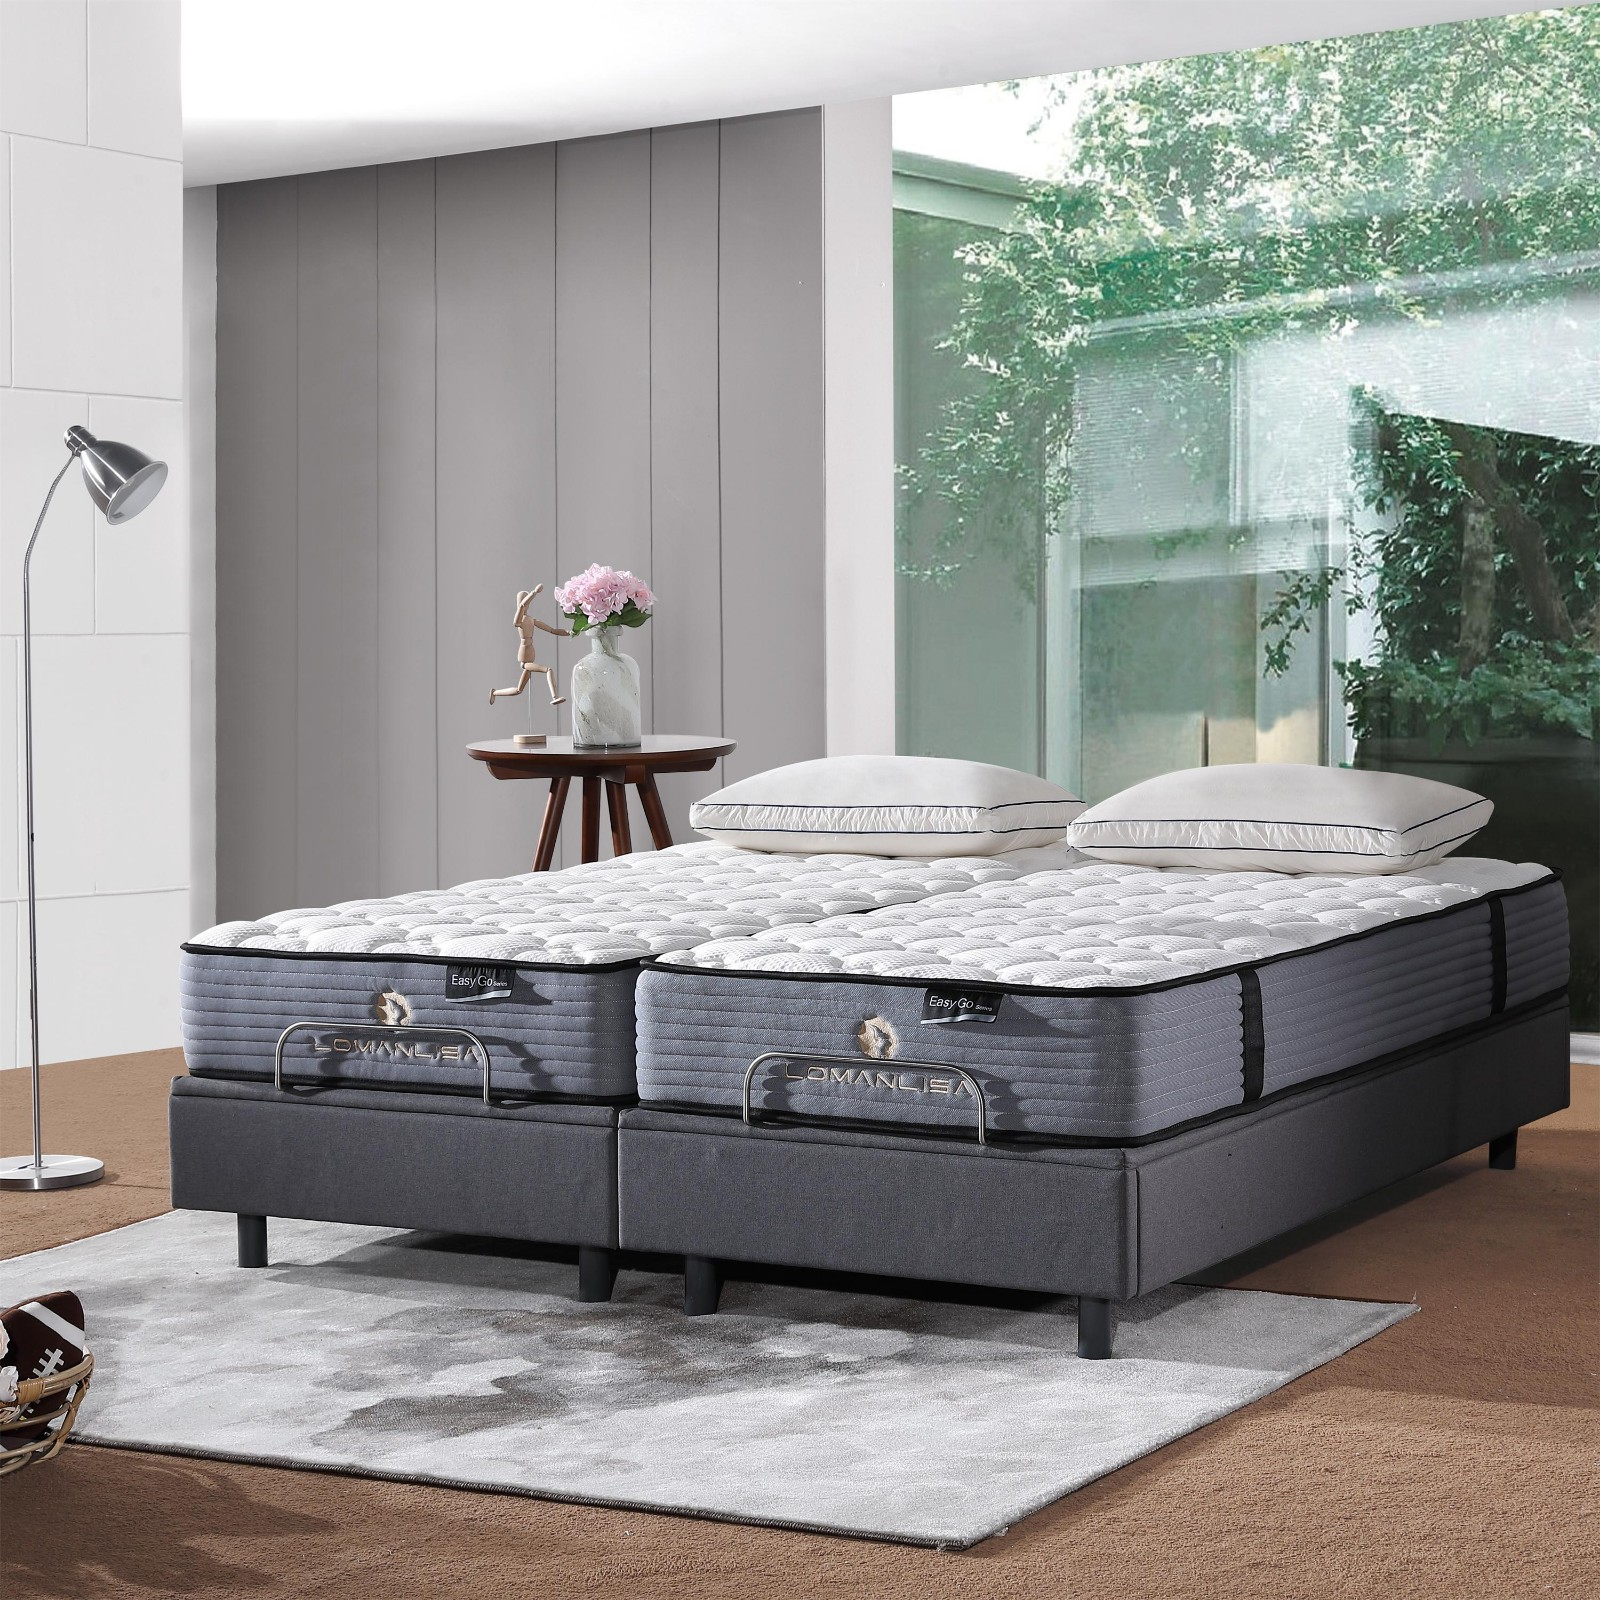 popular eclipse mattress series Comfortable Series delivered easily-2